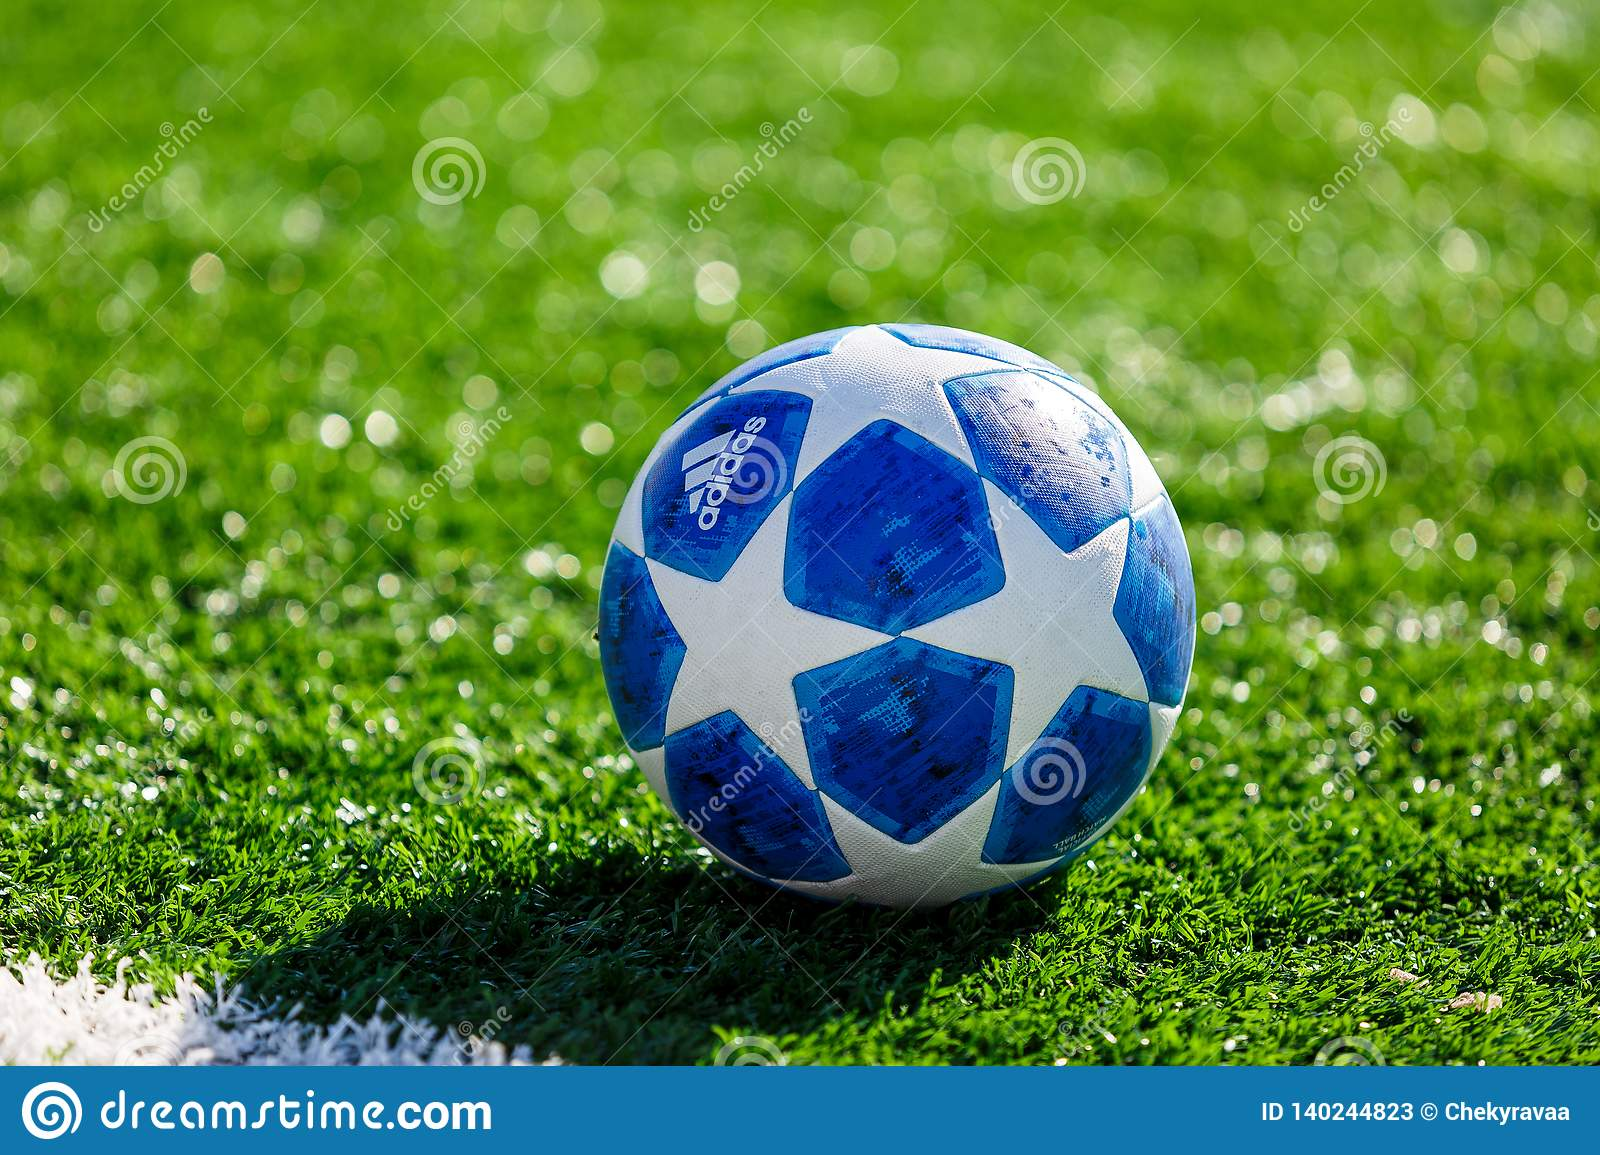 best service 7ab0b 64908 KYIV, UKRAINE — February 16 2019  Official match ball of UEFA Champions  League season 2018 19 Adidas Finale Top training on grass before game.